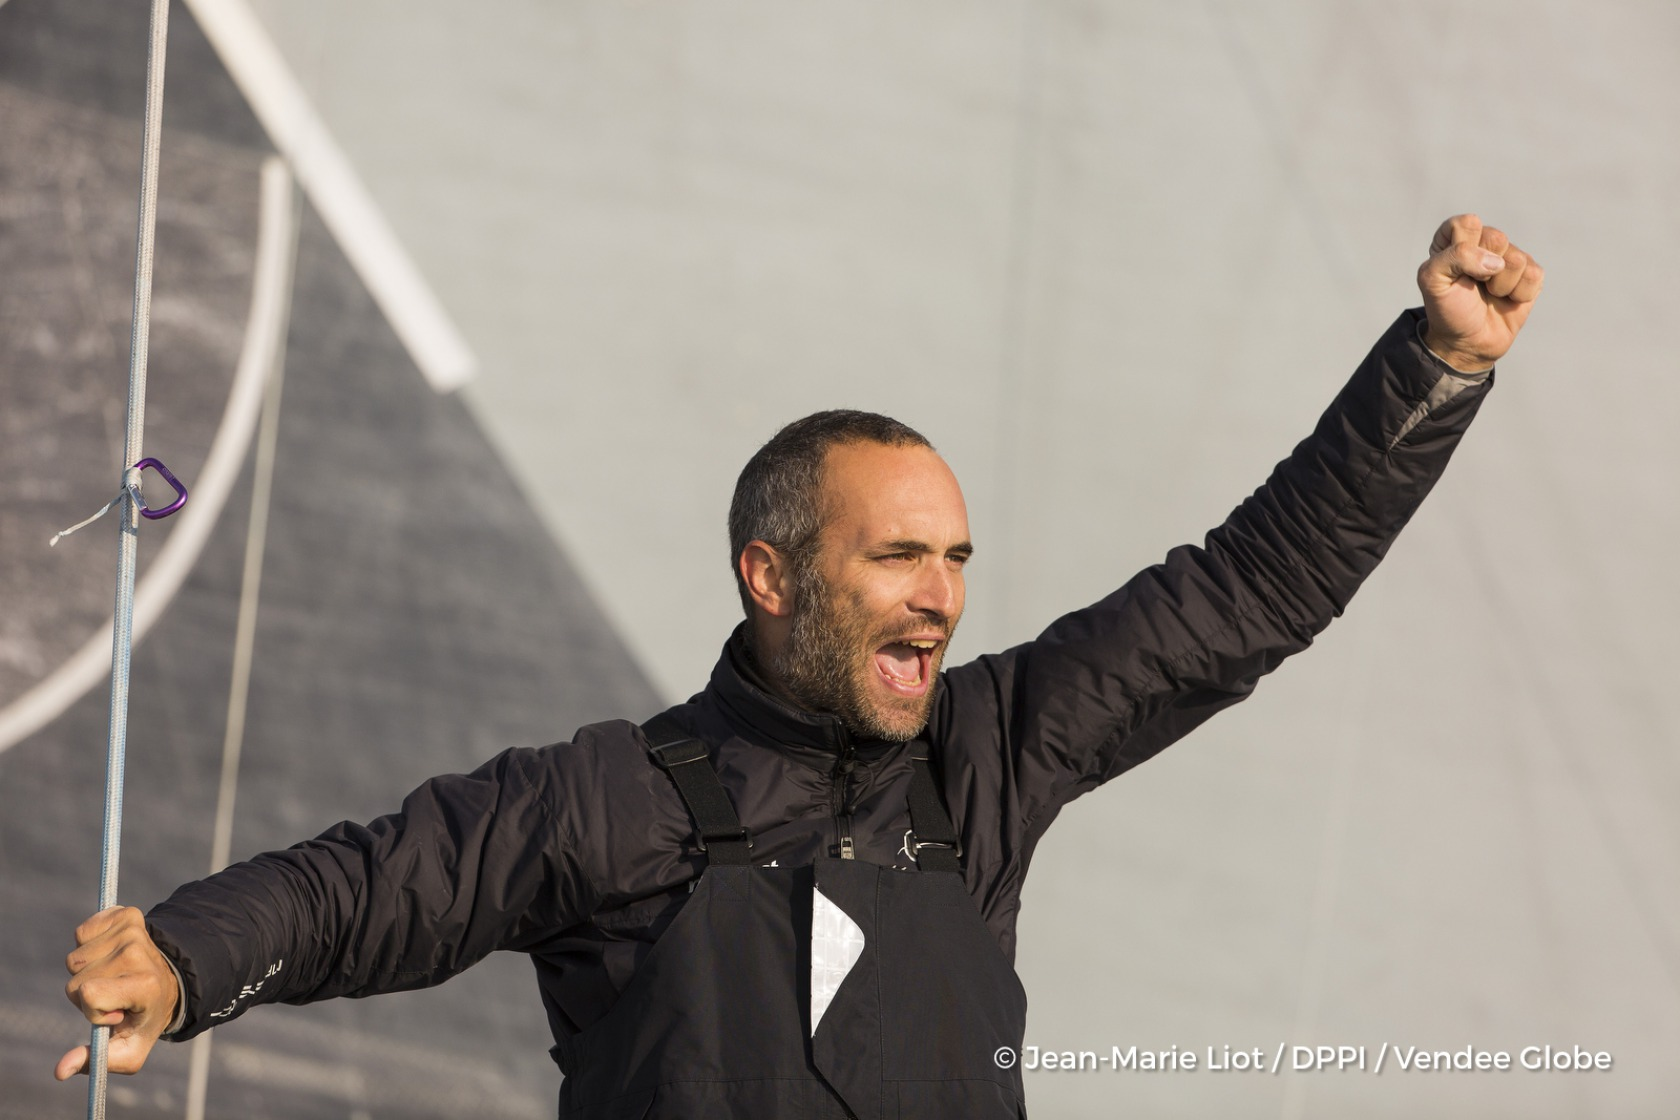 Celebration during Finish arrival of Fabrice Amedeo (FRA), skipper Newrest Matmut, 11th of the sailing circumnavigation solo race Vendee Globe, in Les Sables d'Olonne, France, on February 18th, 2017 - Photo Jean-Marie Liot / DPPI / Vendee Globe